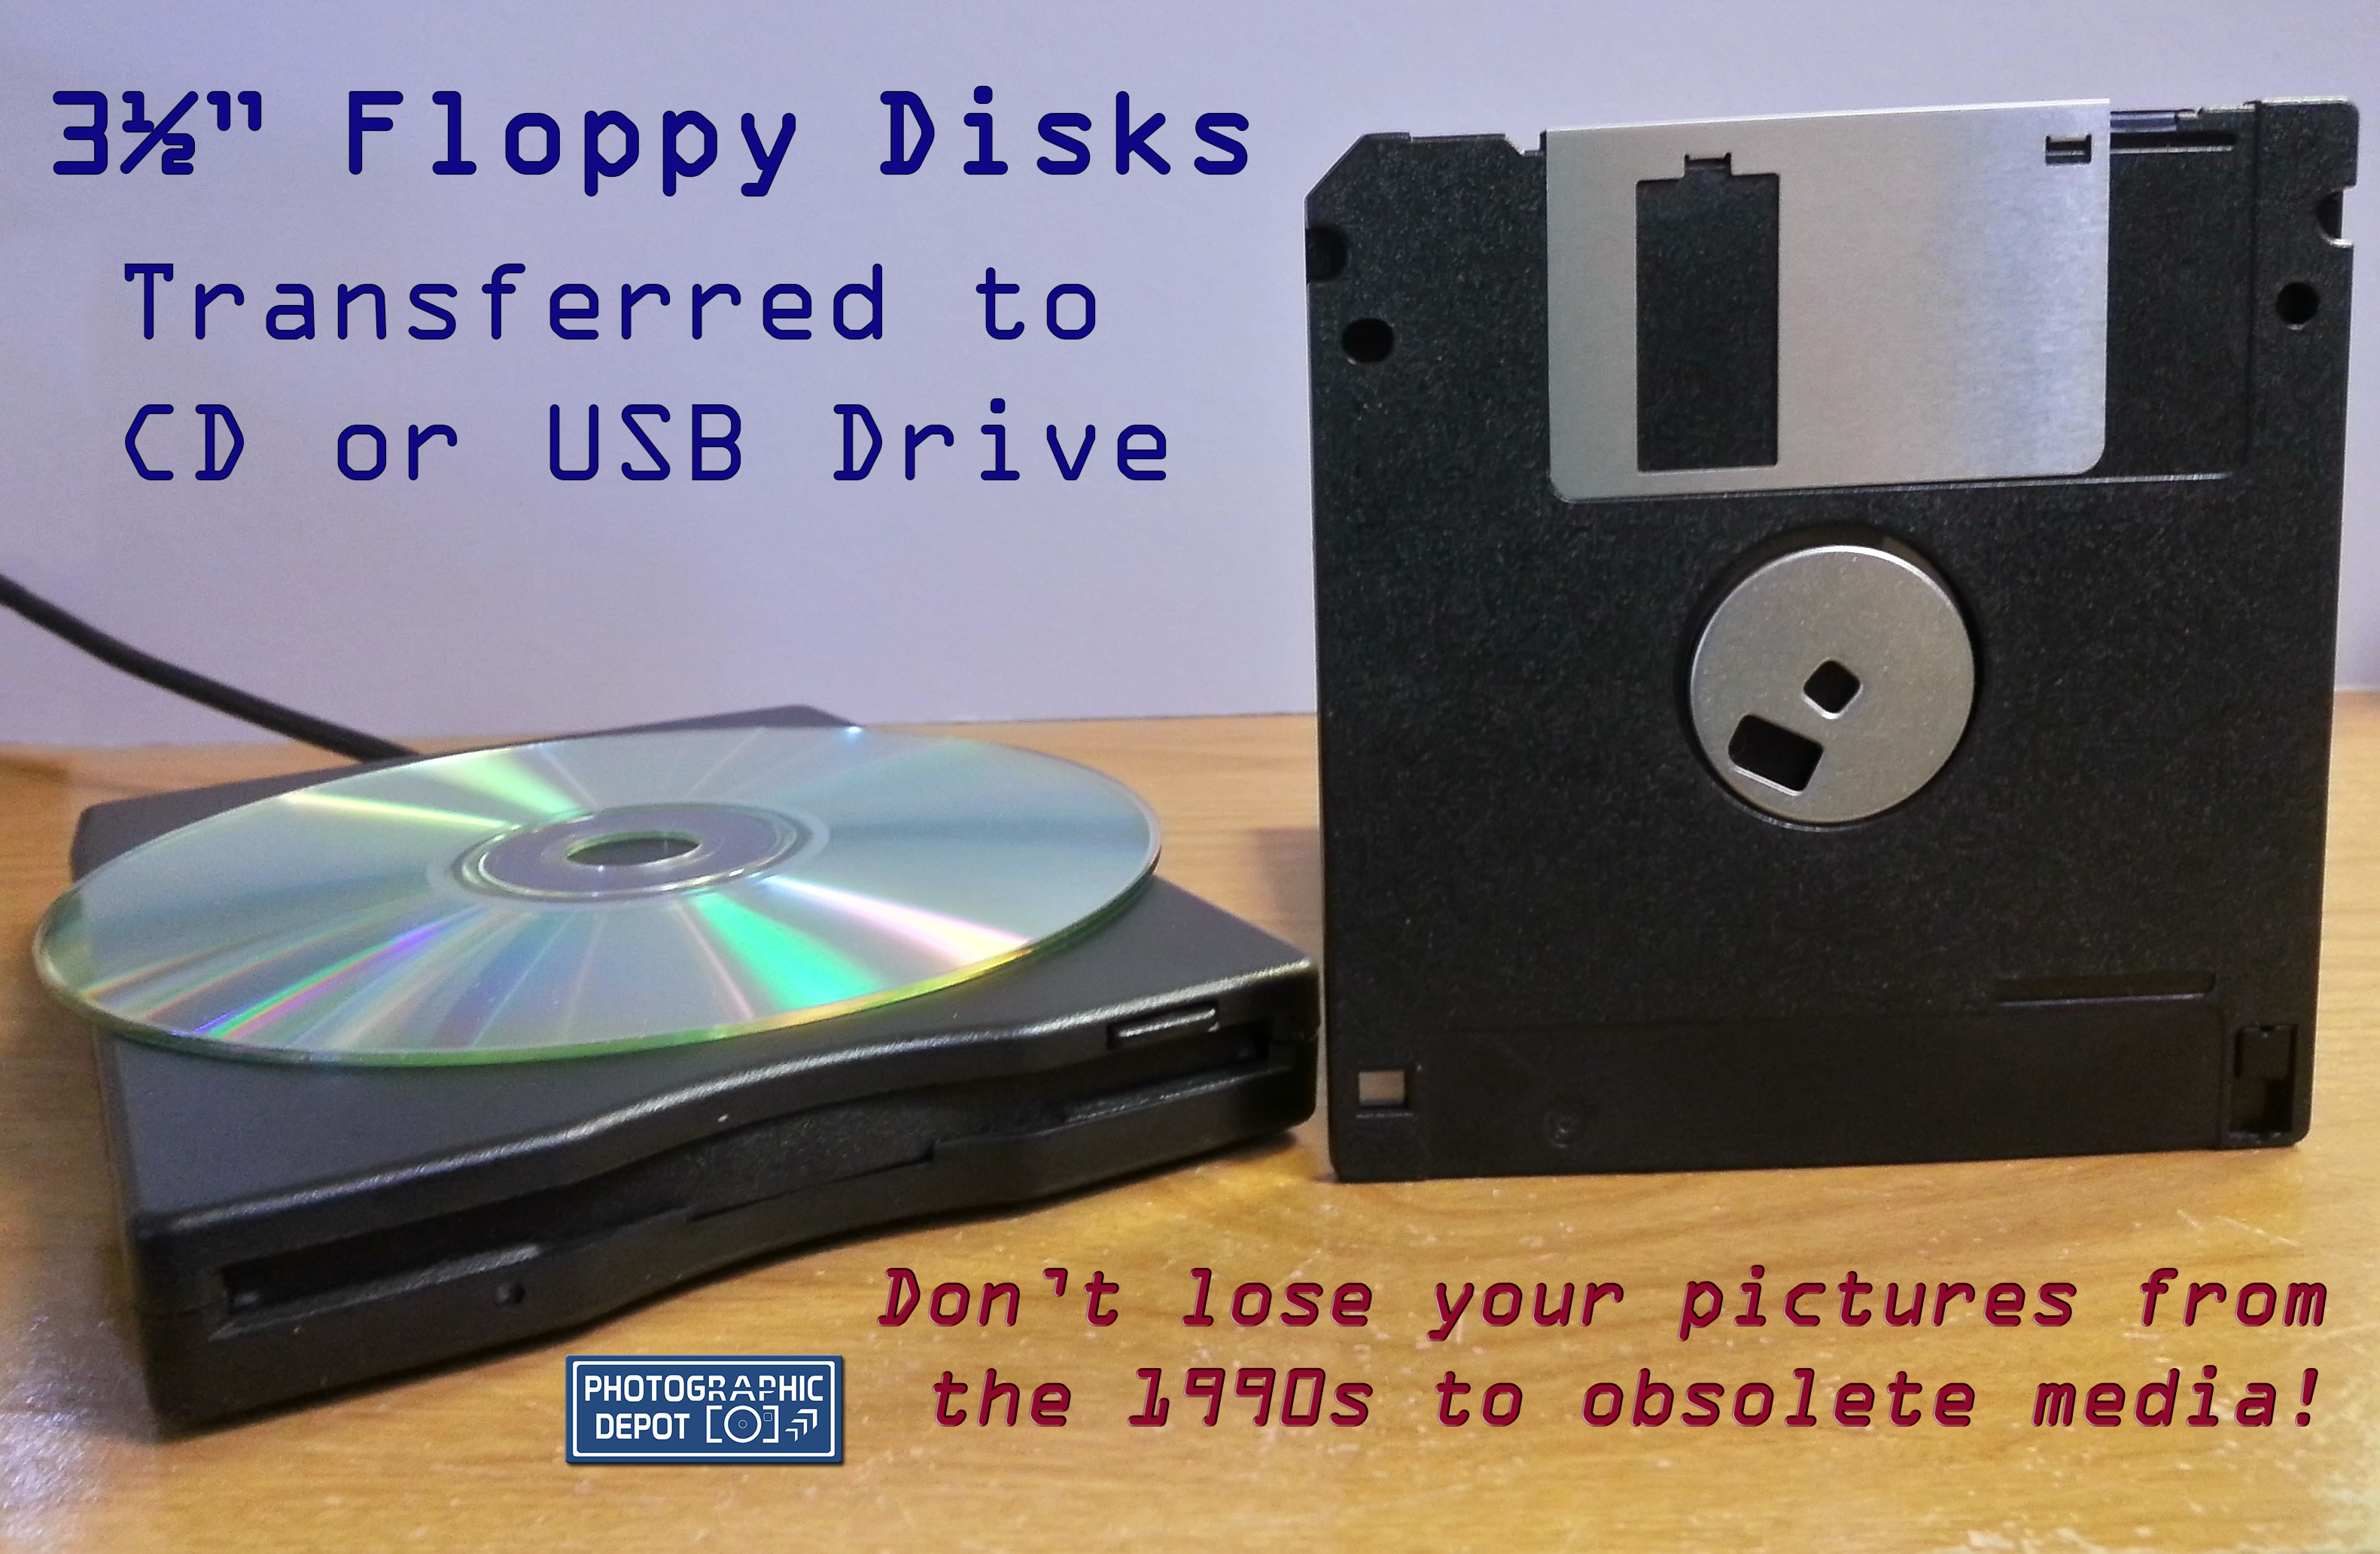 20150908_170942_HDR floppy edit text3 logo